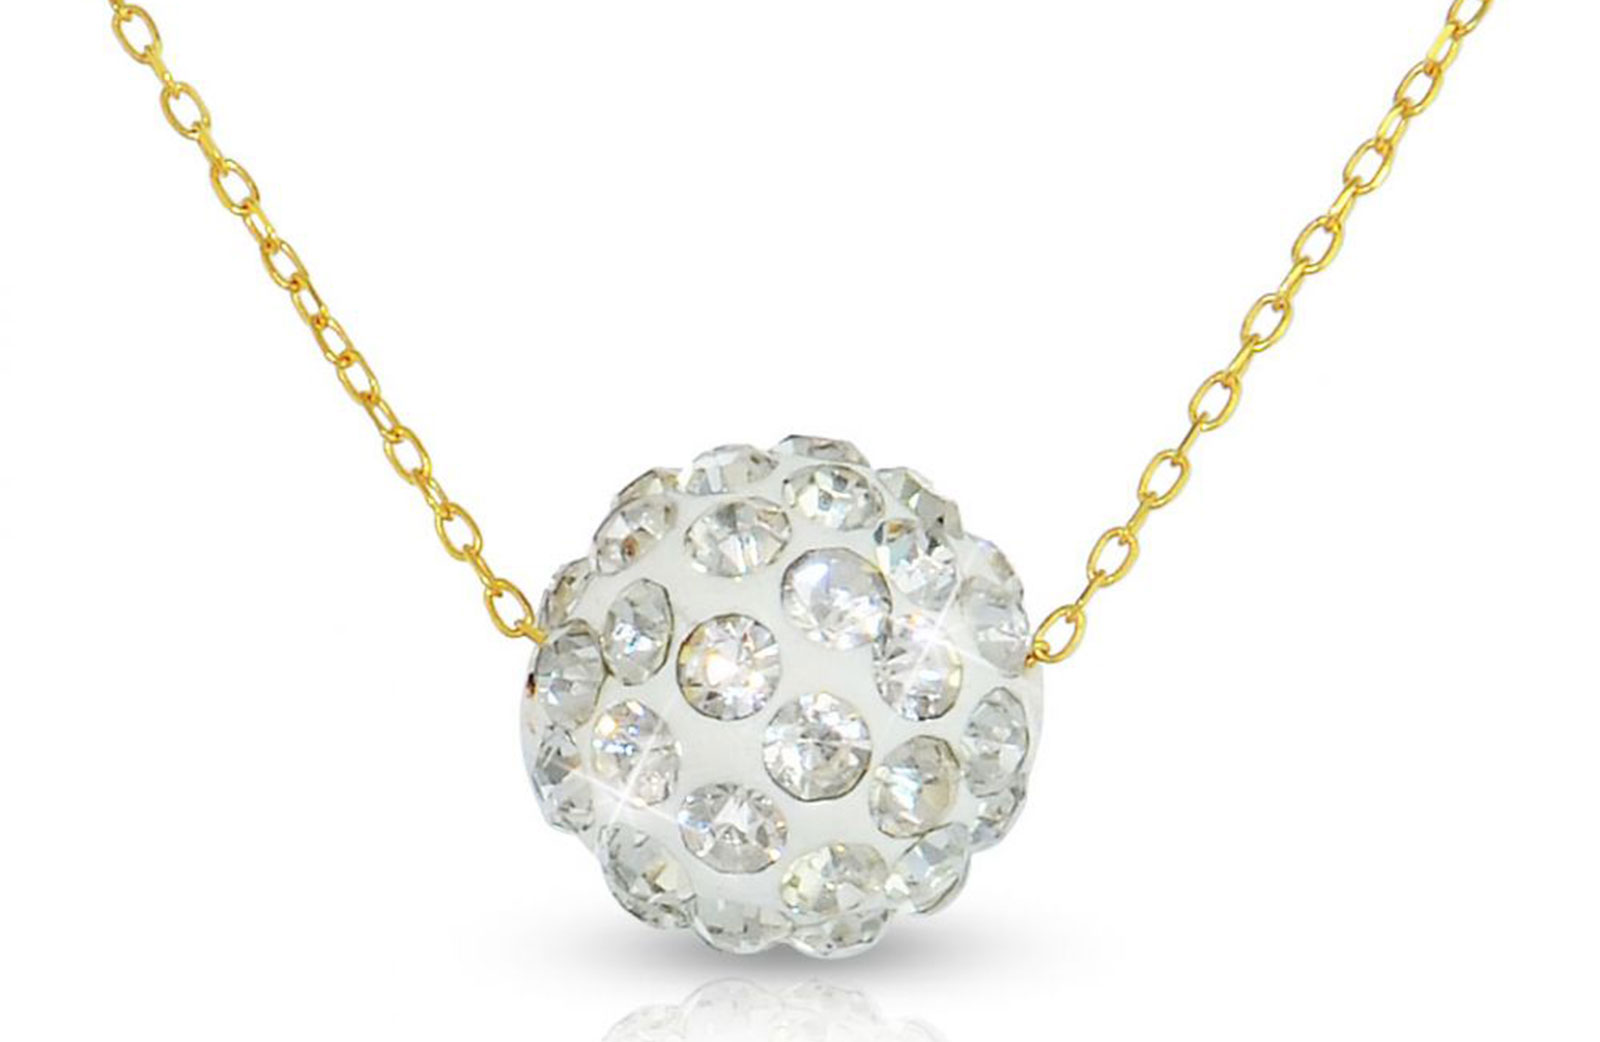 Vera Perla 18K Gold 10mm Simple Crystals Ball Necklace